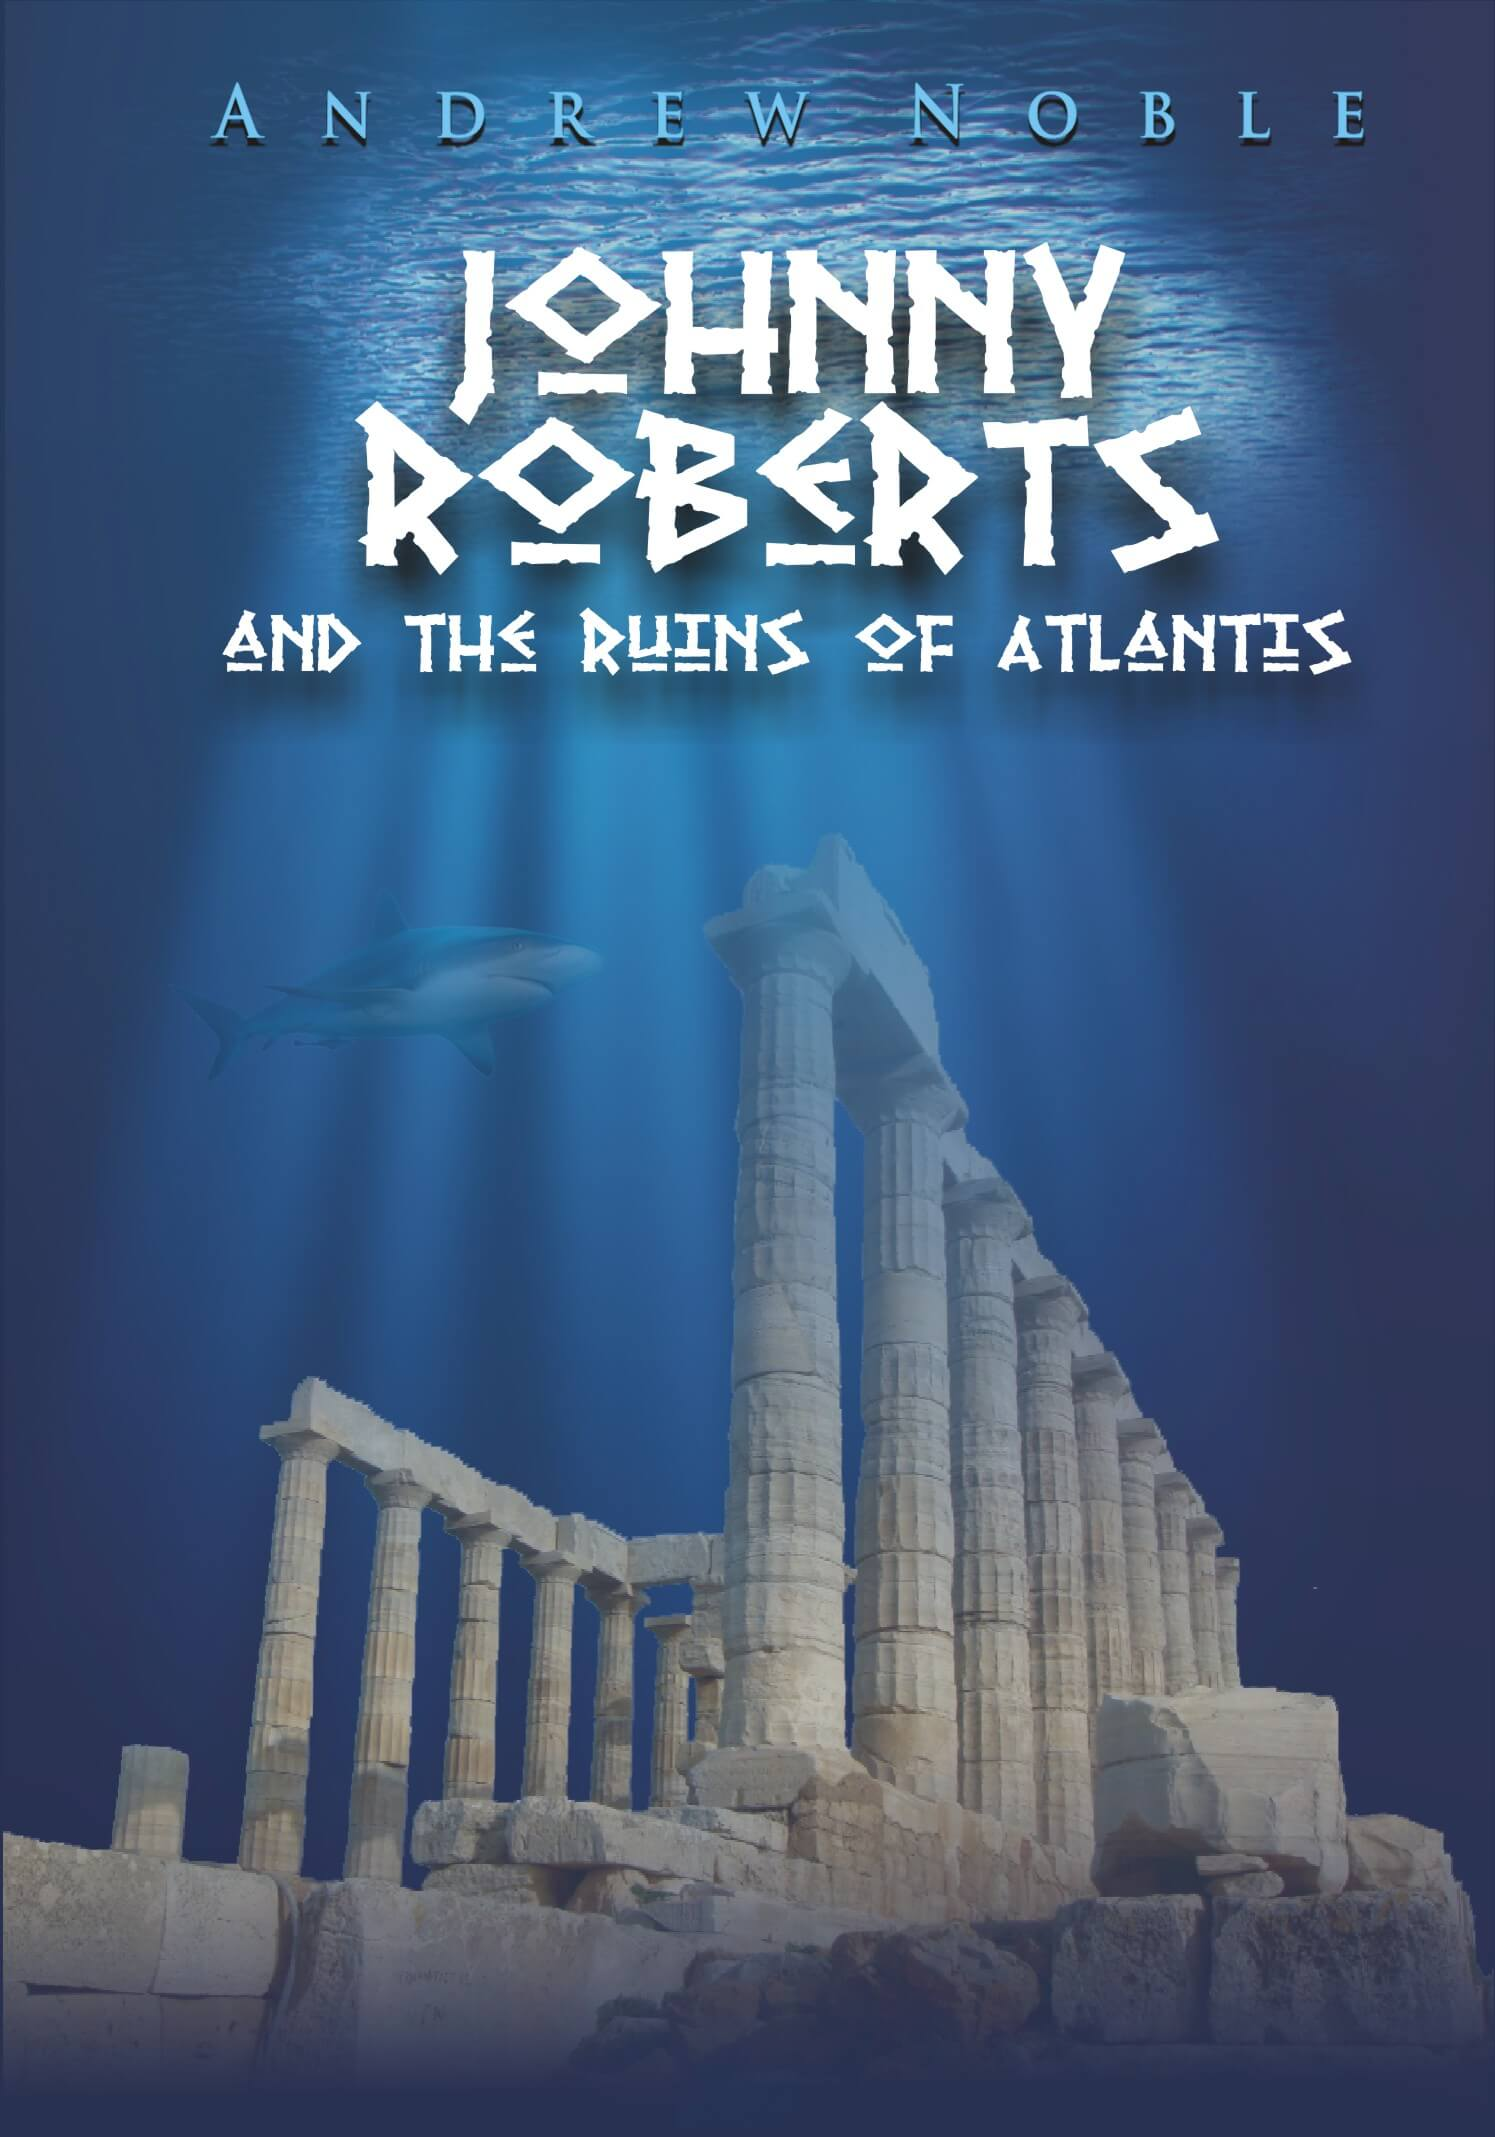 johnny roberts and the ruins of atlantis andrew noble book cover